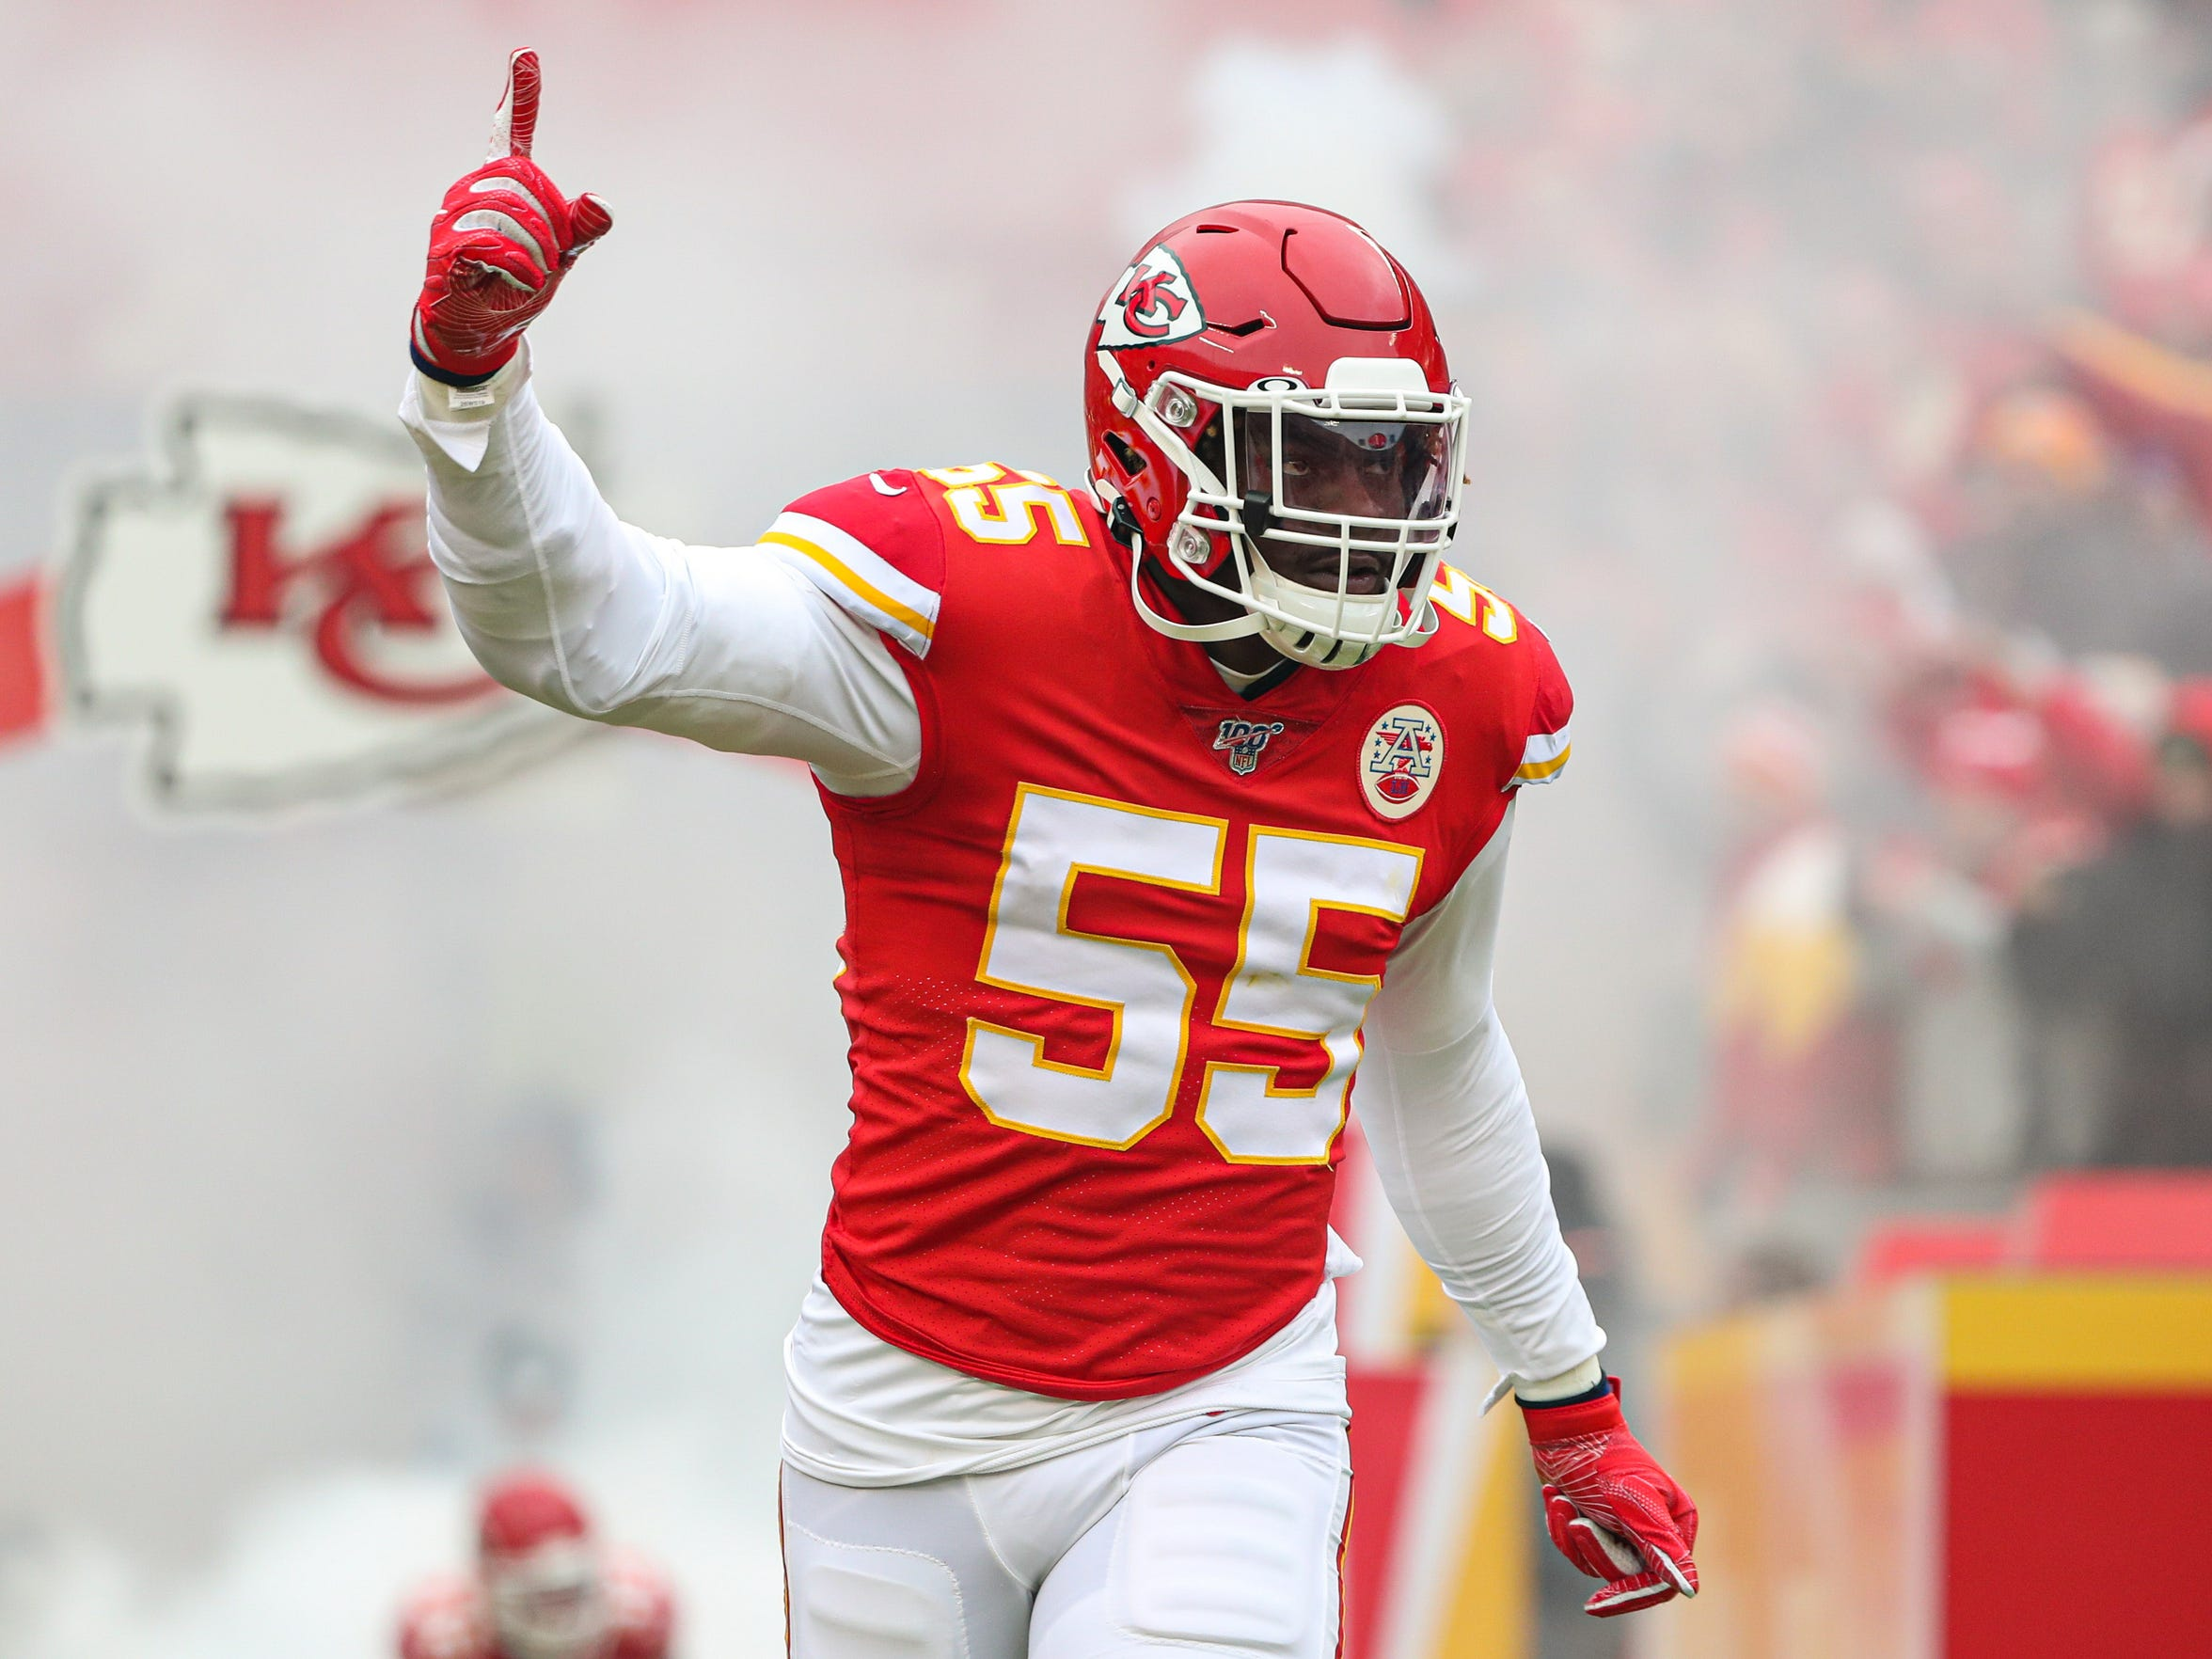 Jan 12, 2020; Kansas City, Missouri, USA; Kansas City Chiefs defensive end Frank Clark (55) is introduced before a AFC Divisional Round playoff football game against the Houston Texans at Arrowhead Stadium. Mandatory Credit: Jay Biggerstaff-USA TODAY Sports